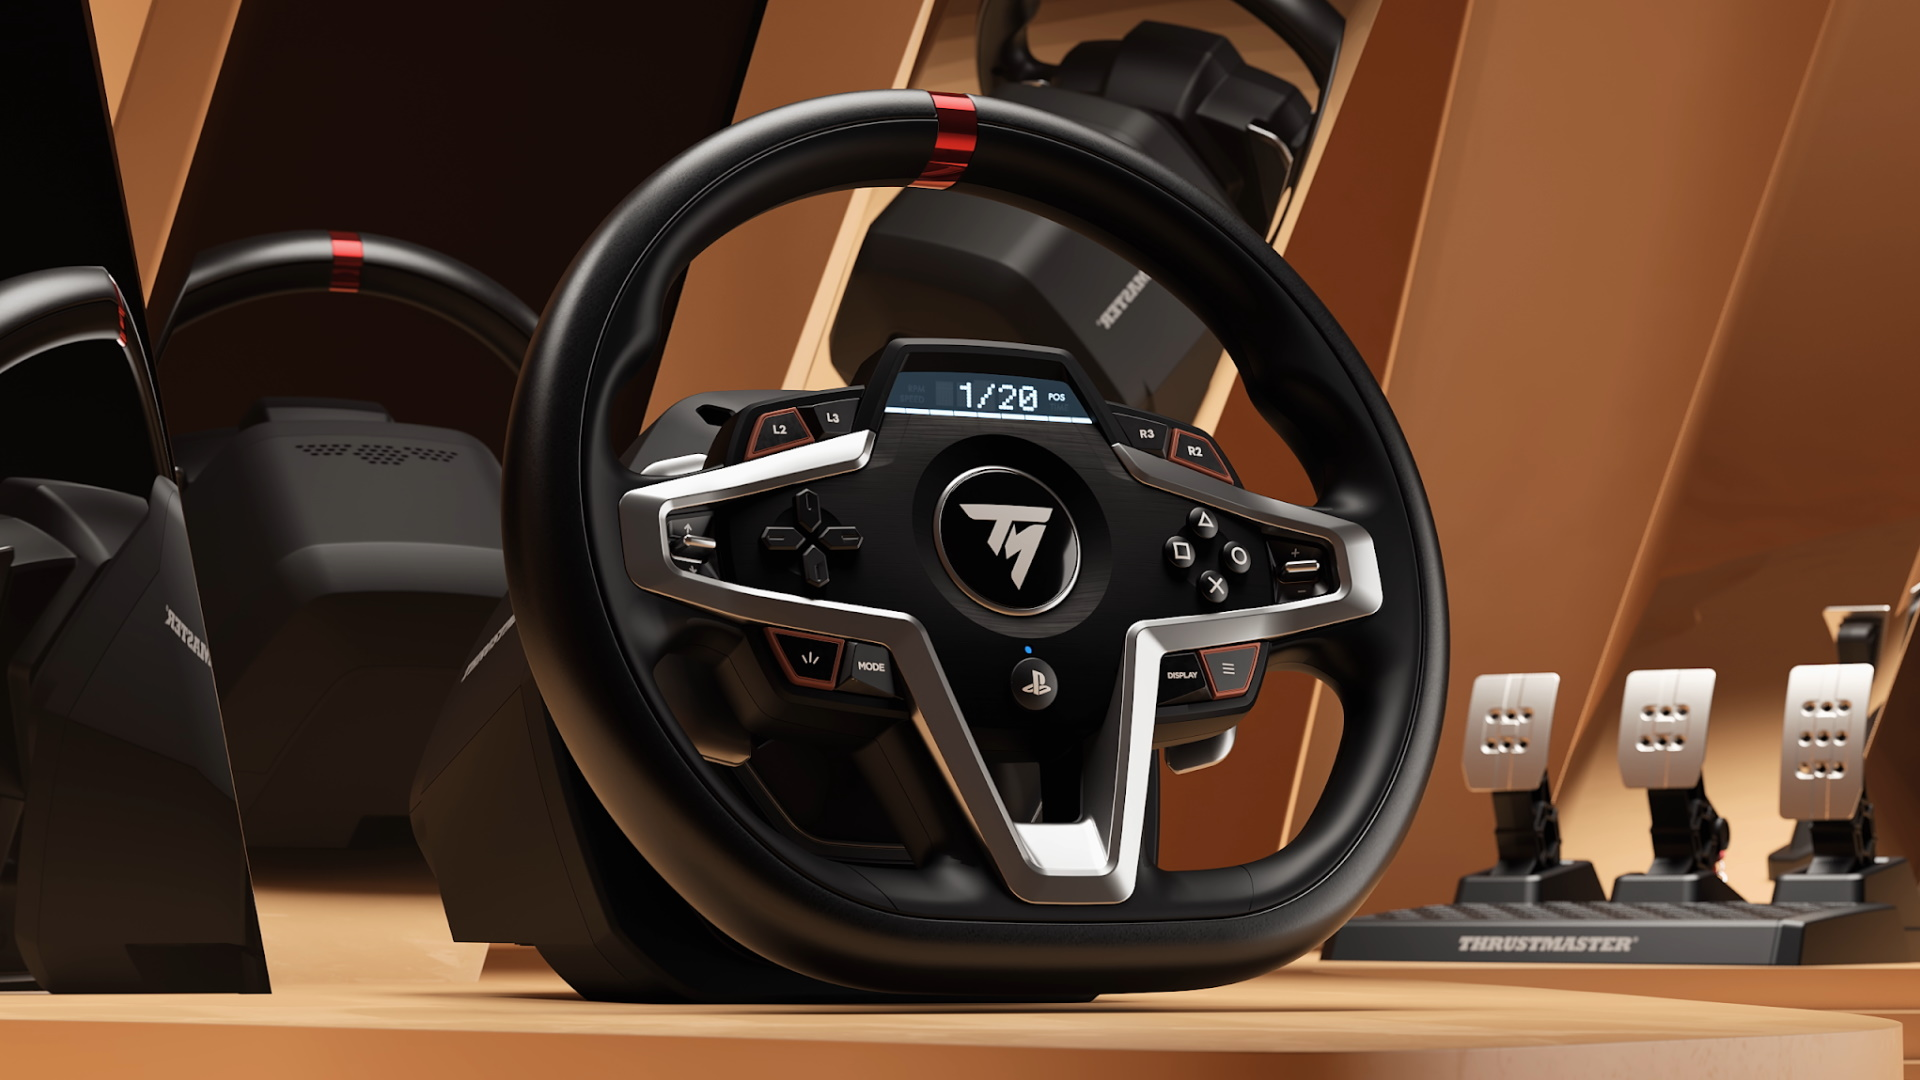 Thrustmaster unveils the T248 PS5 racing wheel